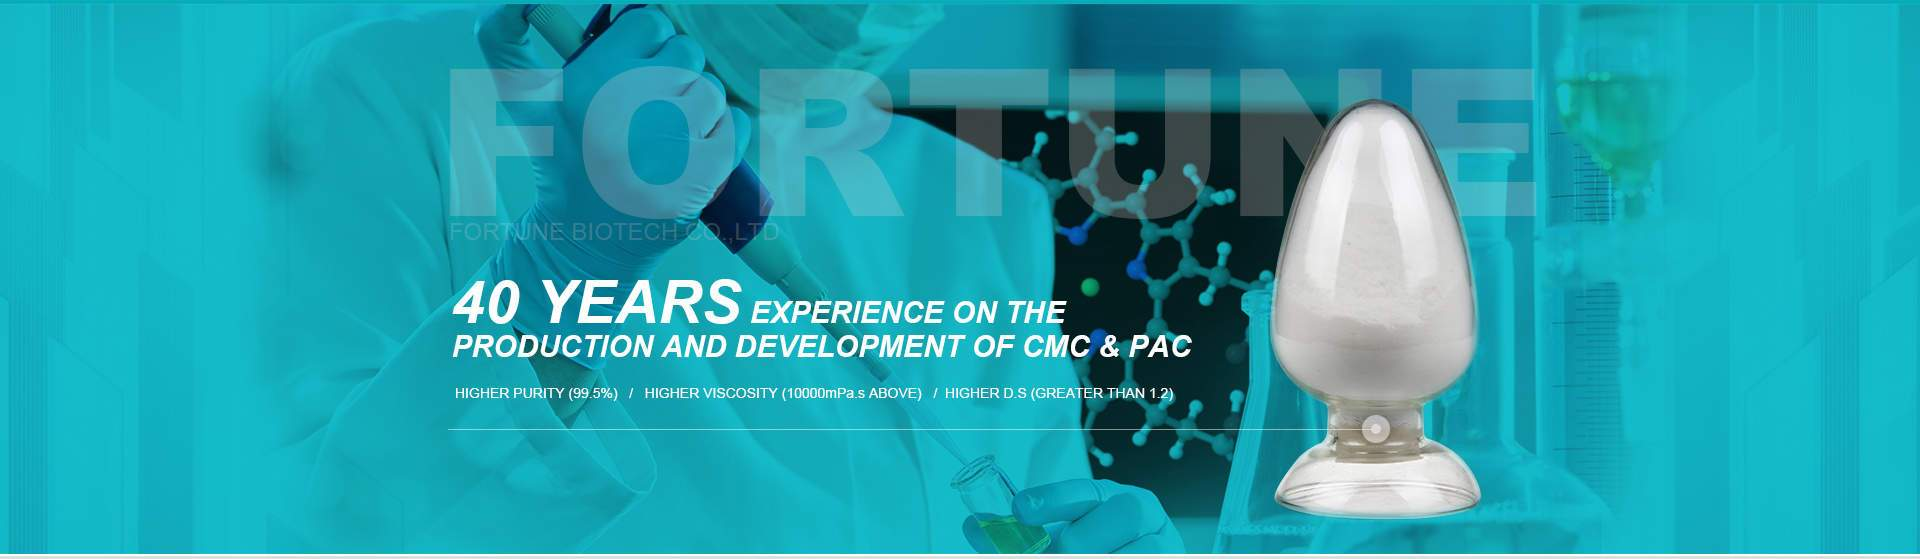 40 years' experience on the production and development of CMC&PAC